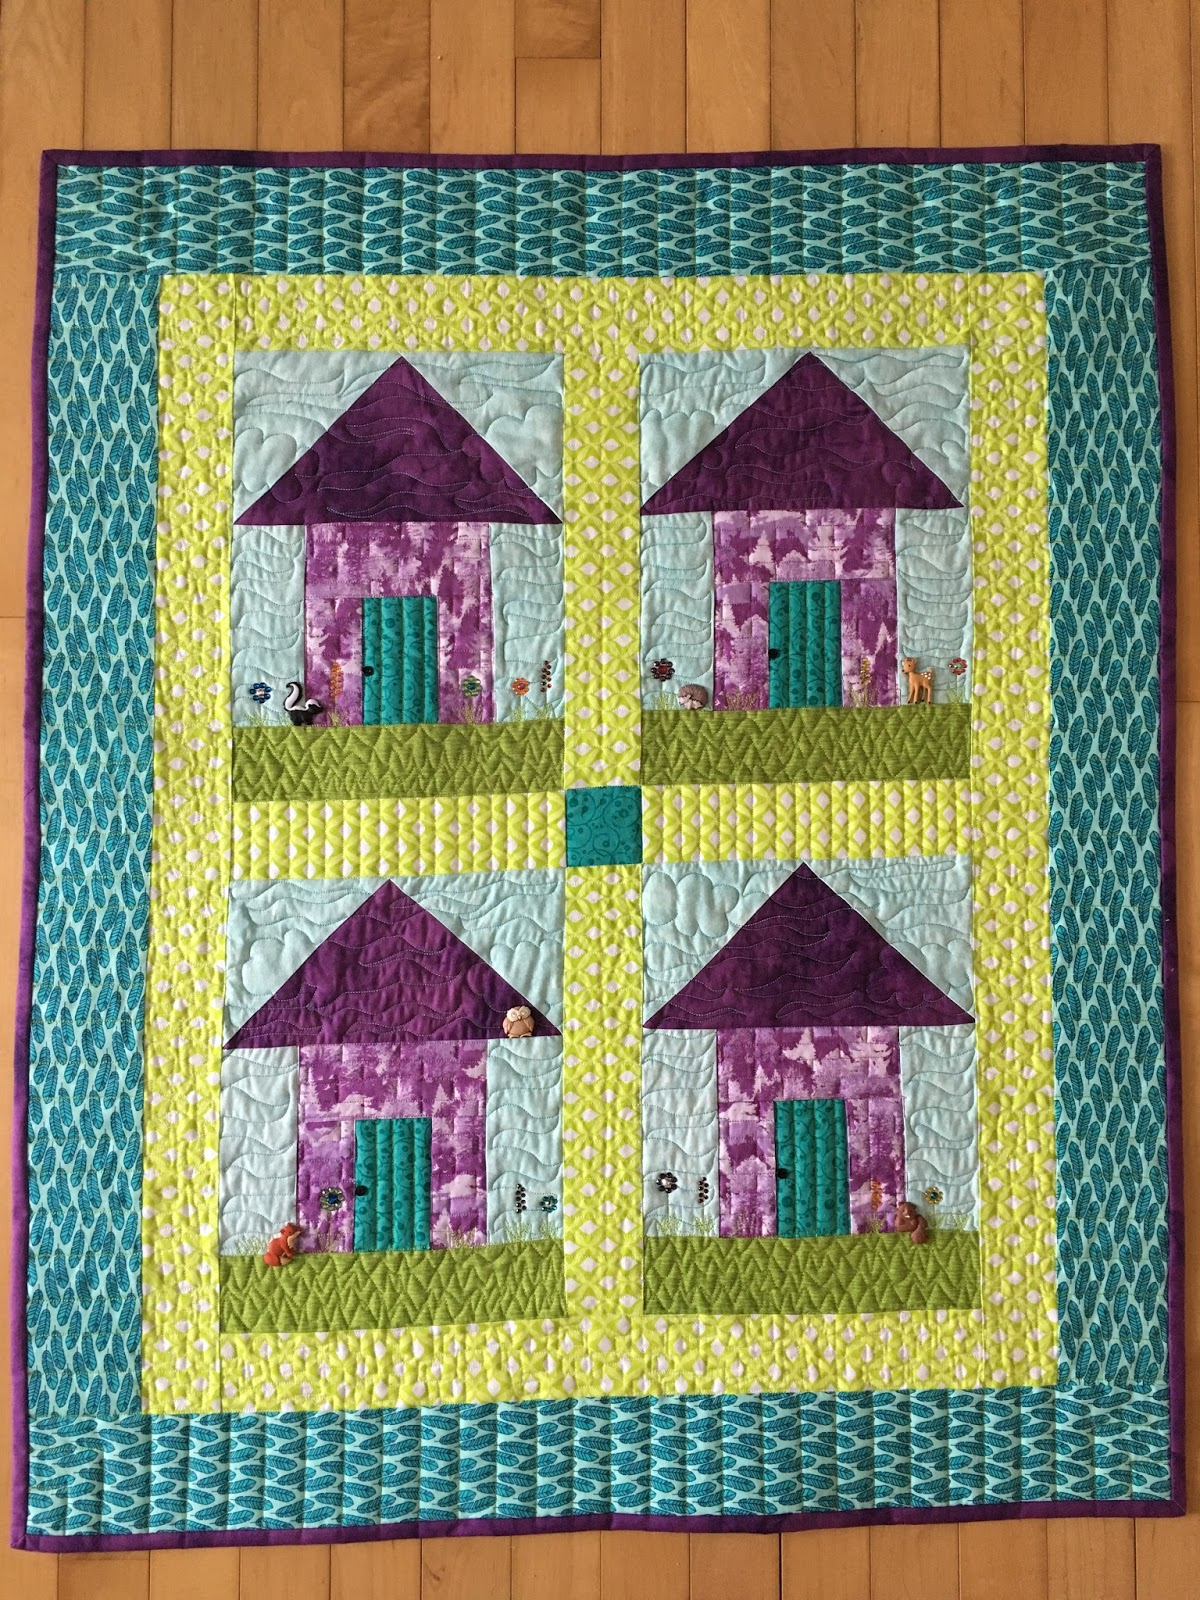 Sewing & Quilt Gallery: New England Cabins (formerly Bahama Beach Huts)